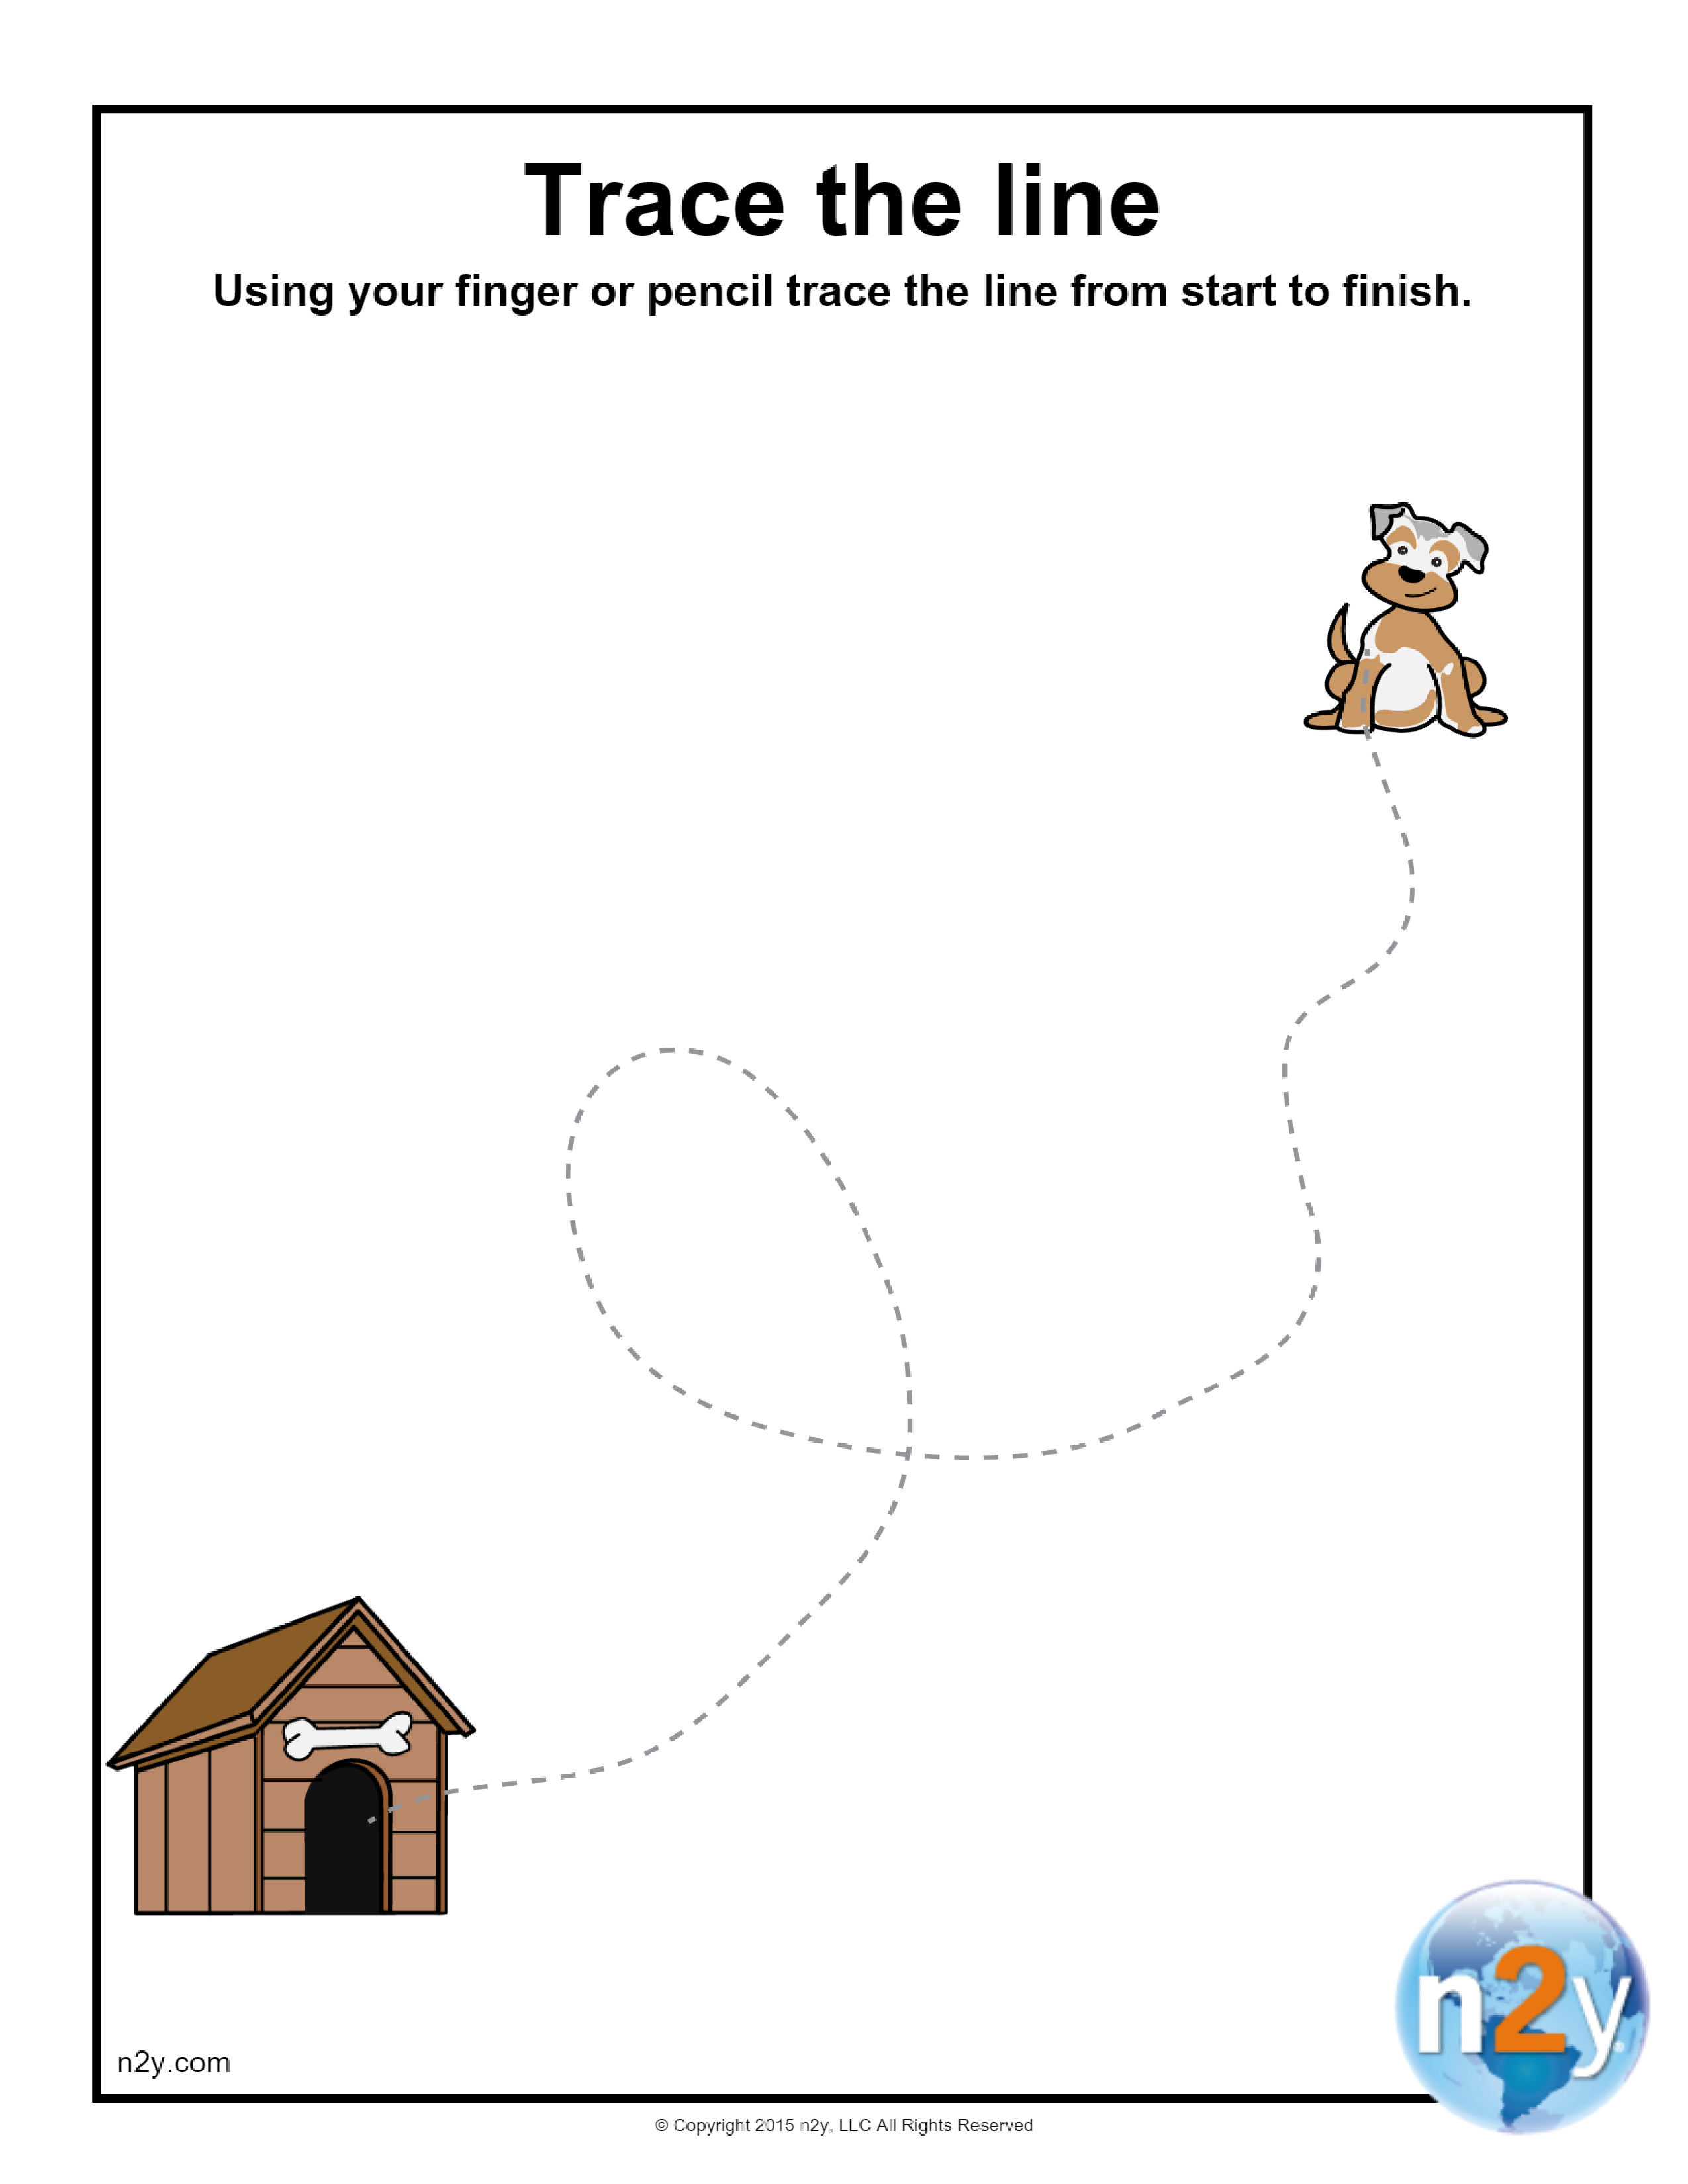 Help The Puppy Find His Dog House By Tracing The Line